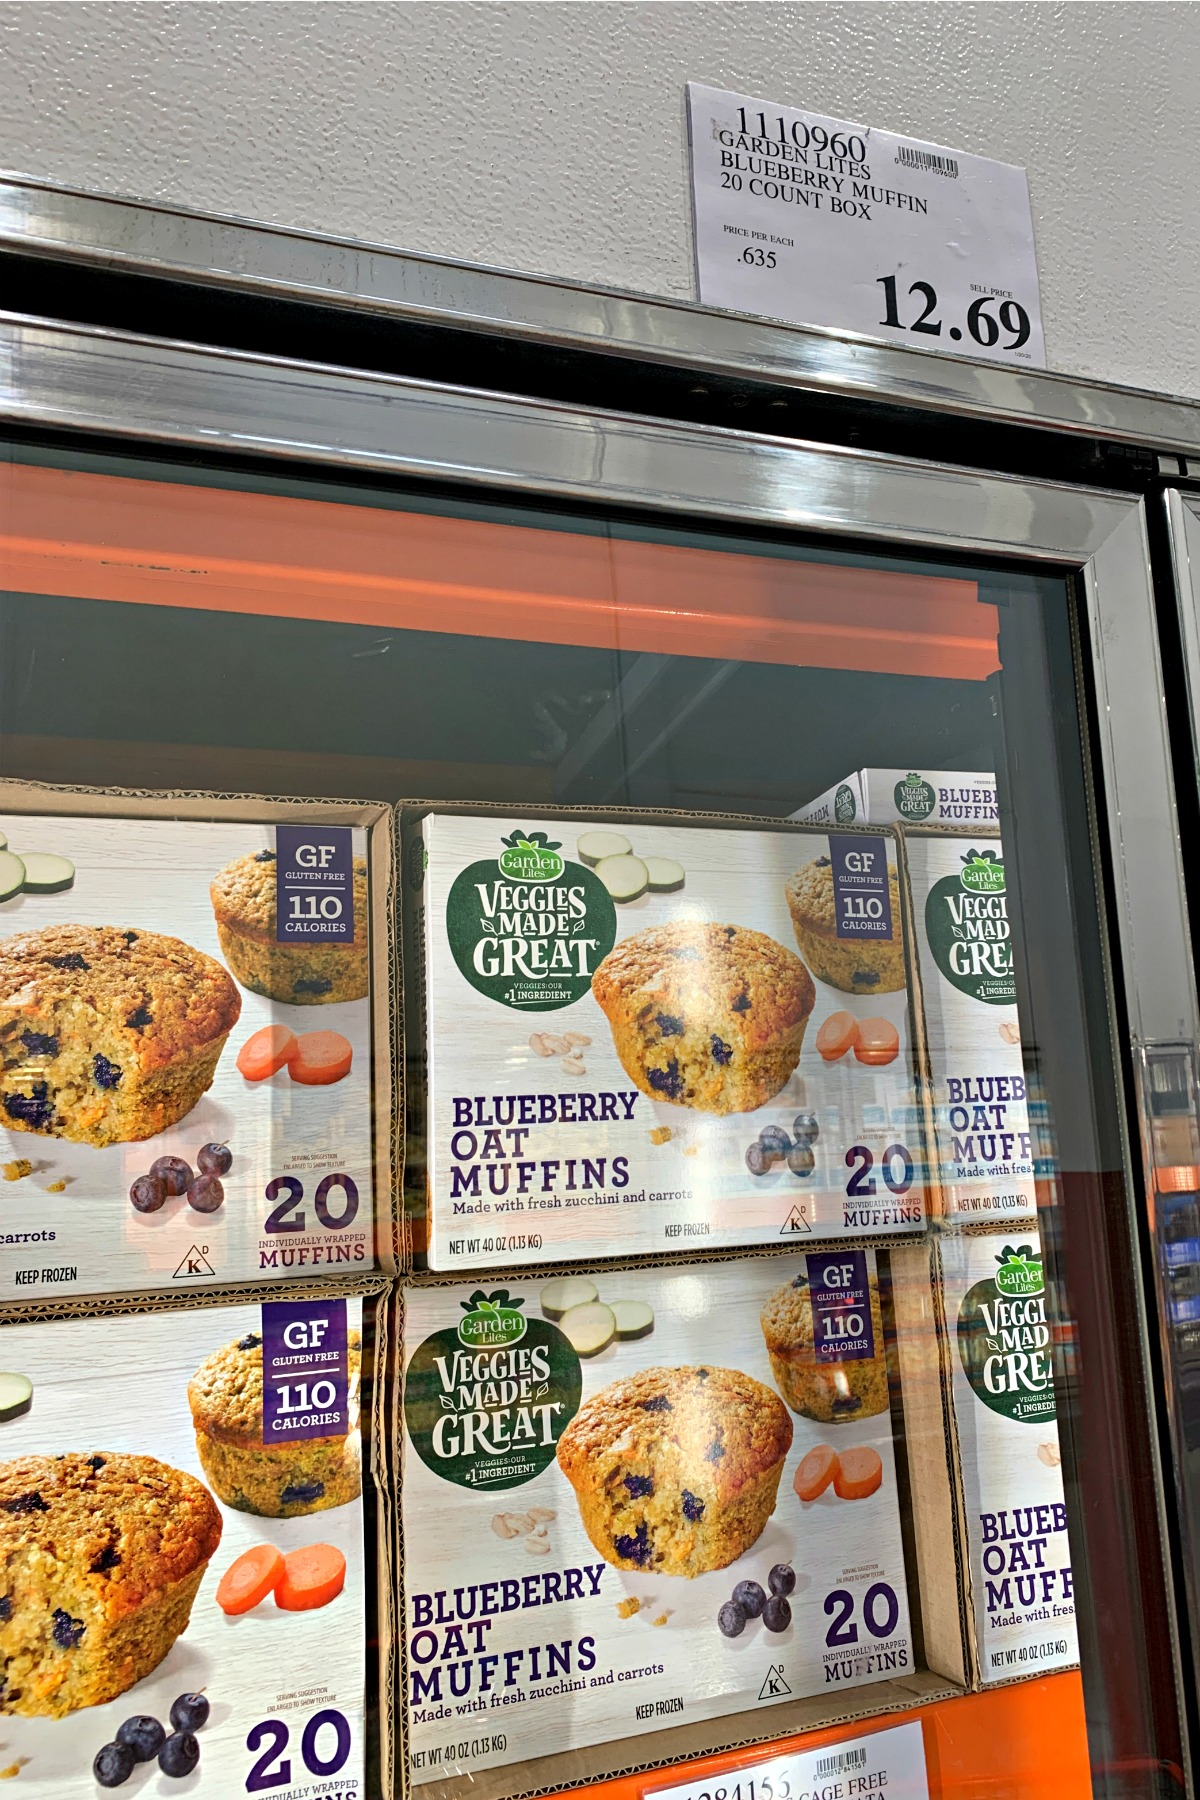 Blueberry Oat Muffins box in the freezer section at Costco